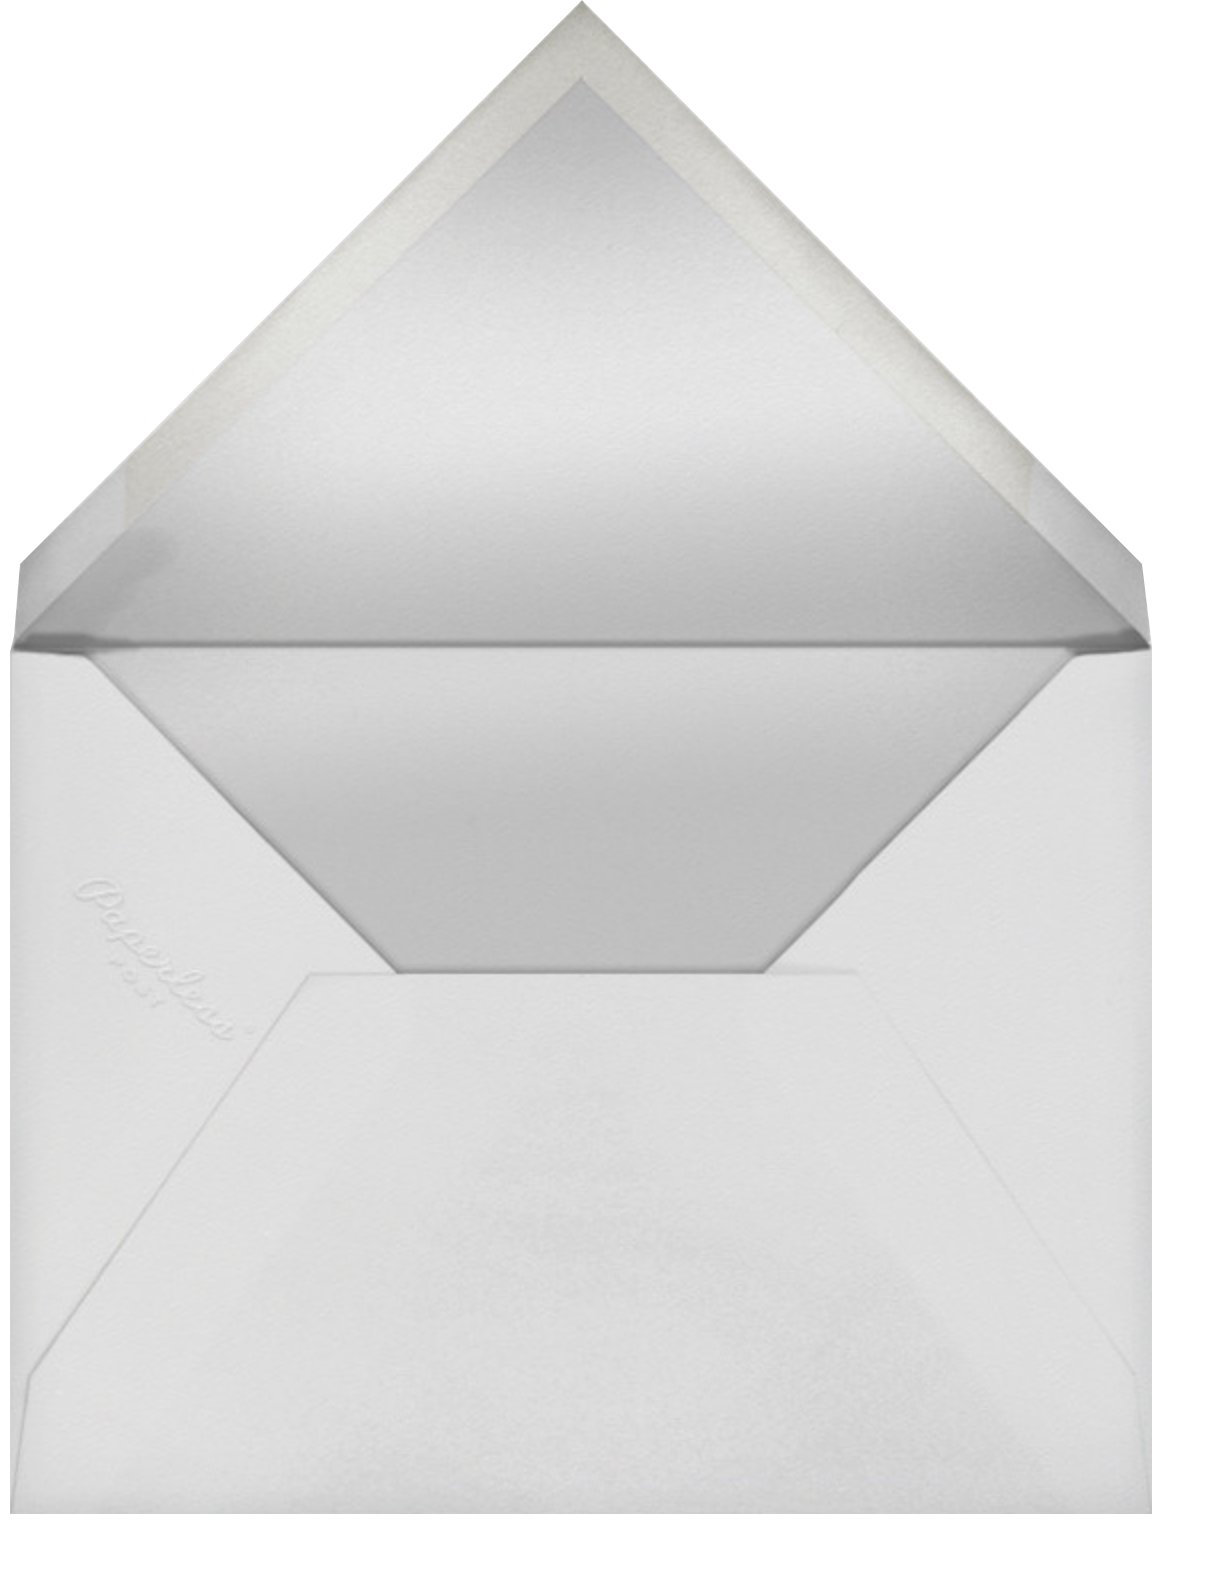 Savoy (Tall) - Gold - Paperless Post - Baby shower - envelope back